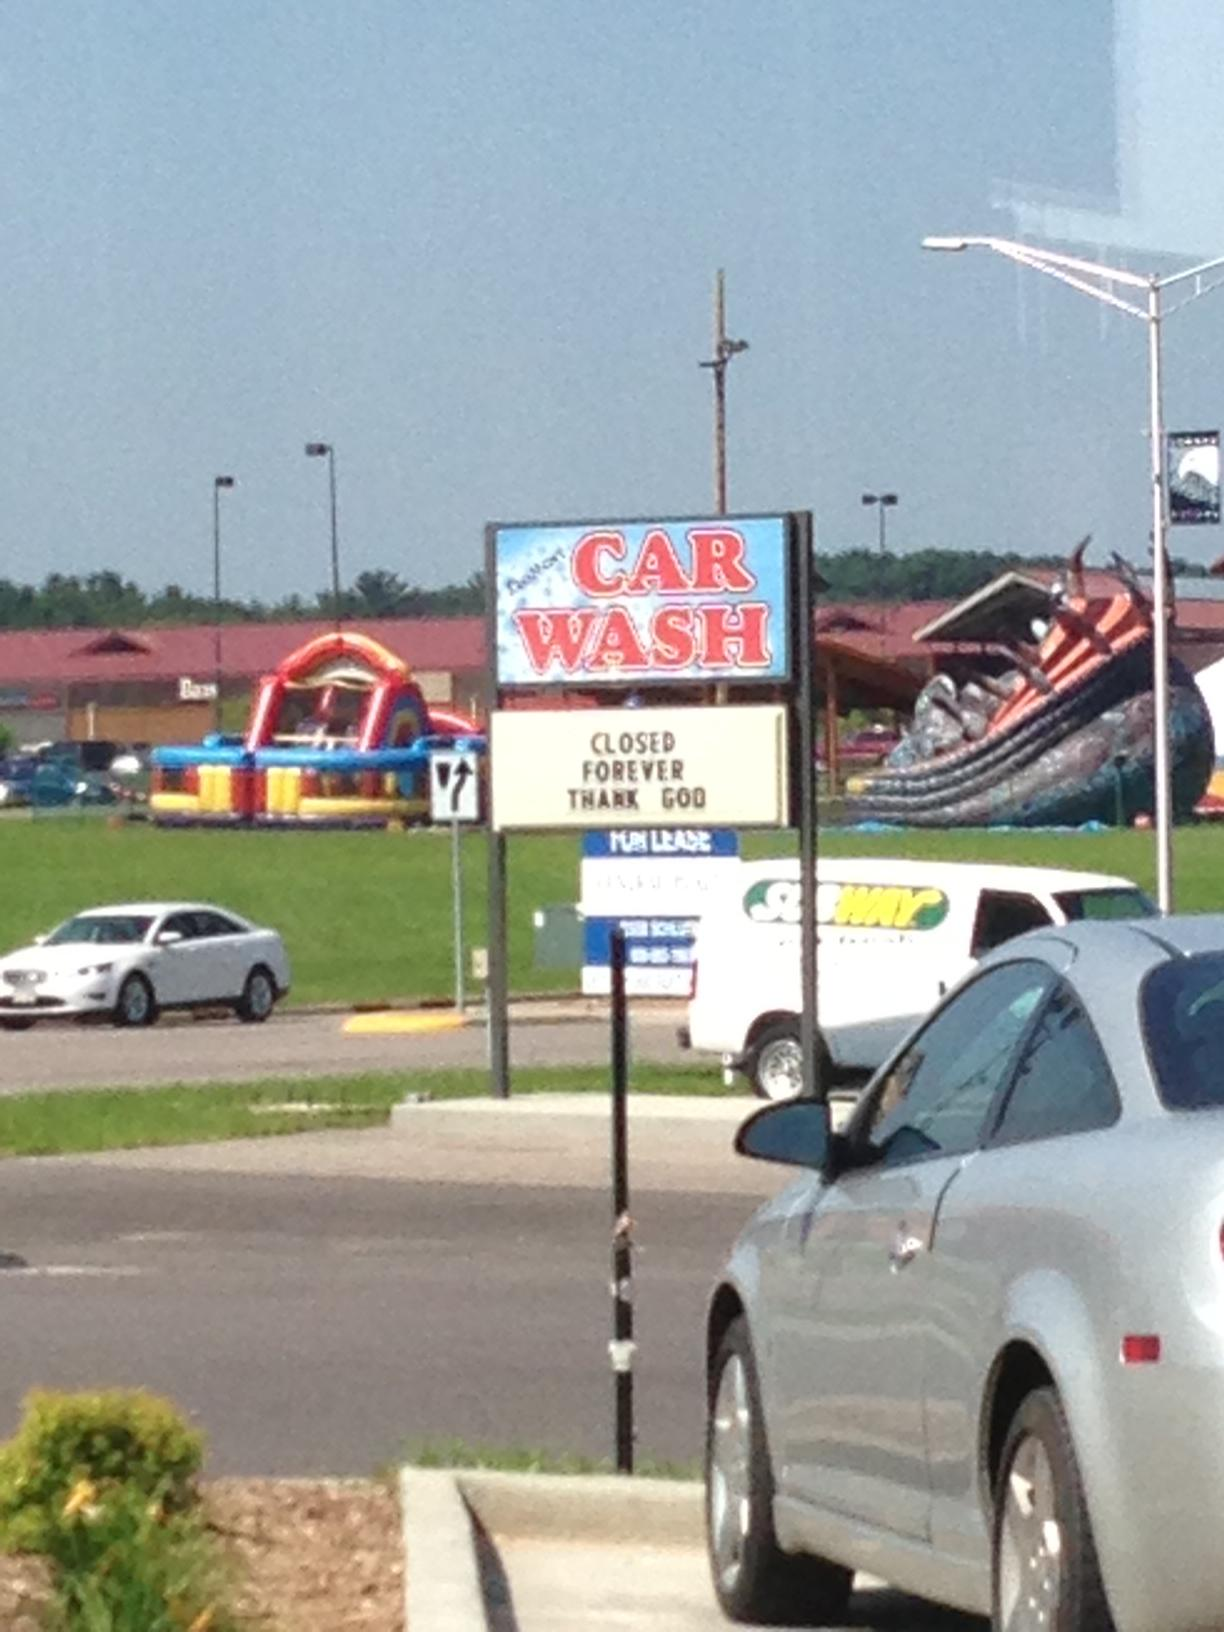 Funny car wash signs images galleries for Clean car pictures